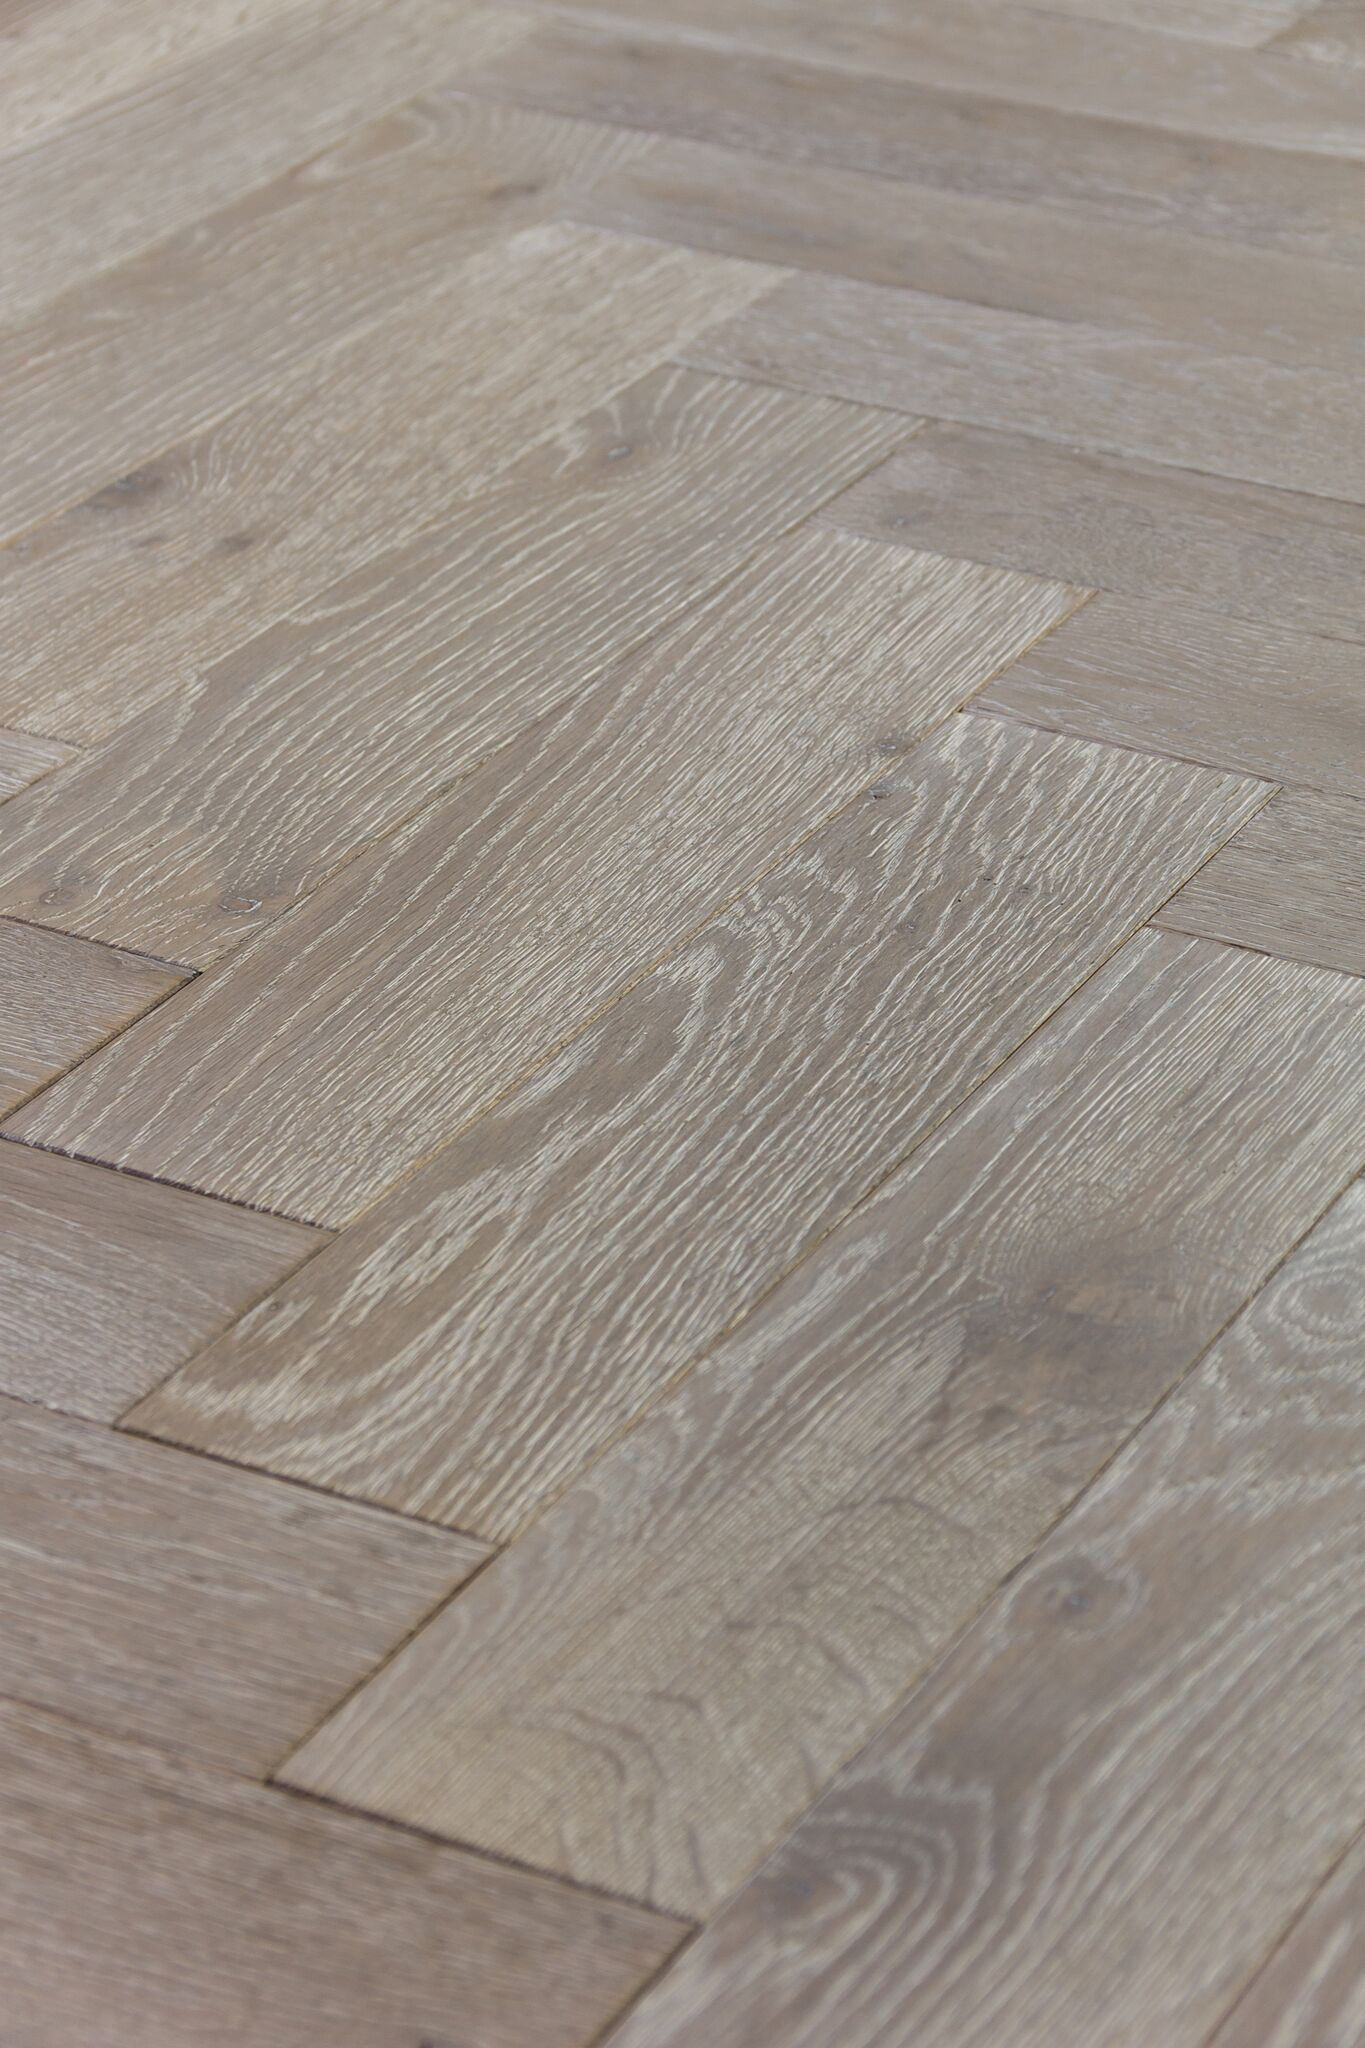 Mwf 658 Sea Mist Rustic Oak Engineered Wood Floor With Herringbone Design Micro Bevelled Edge On 4 Sides Finished In Lye Colour Oil And Coats Of